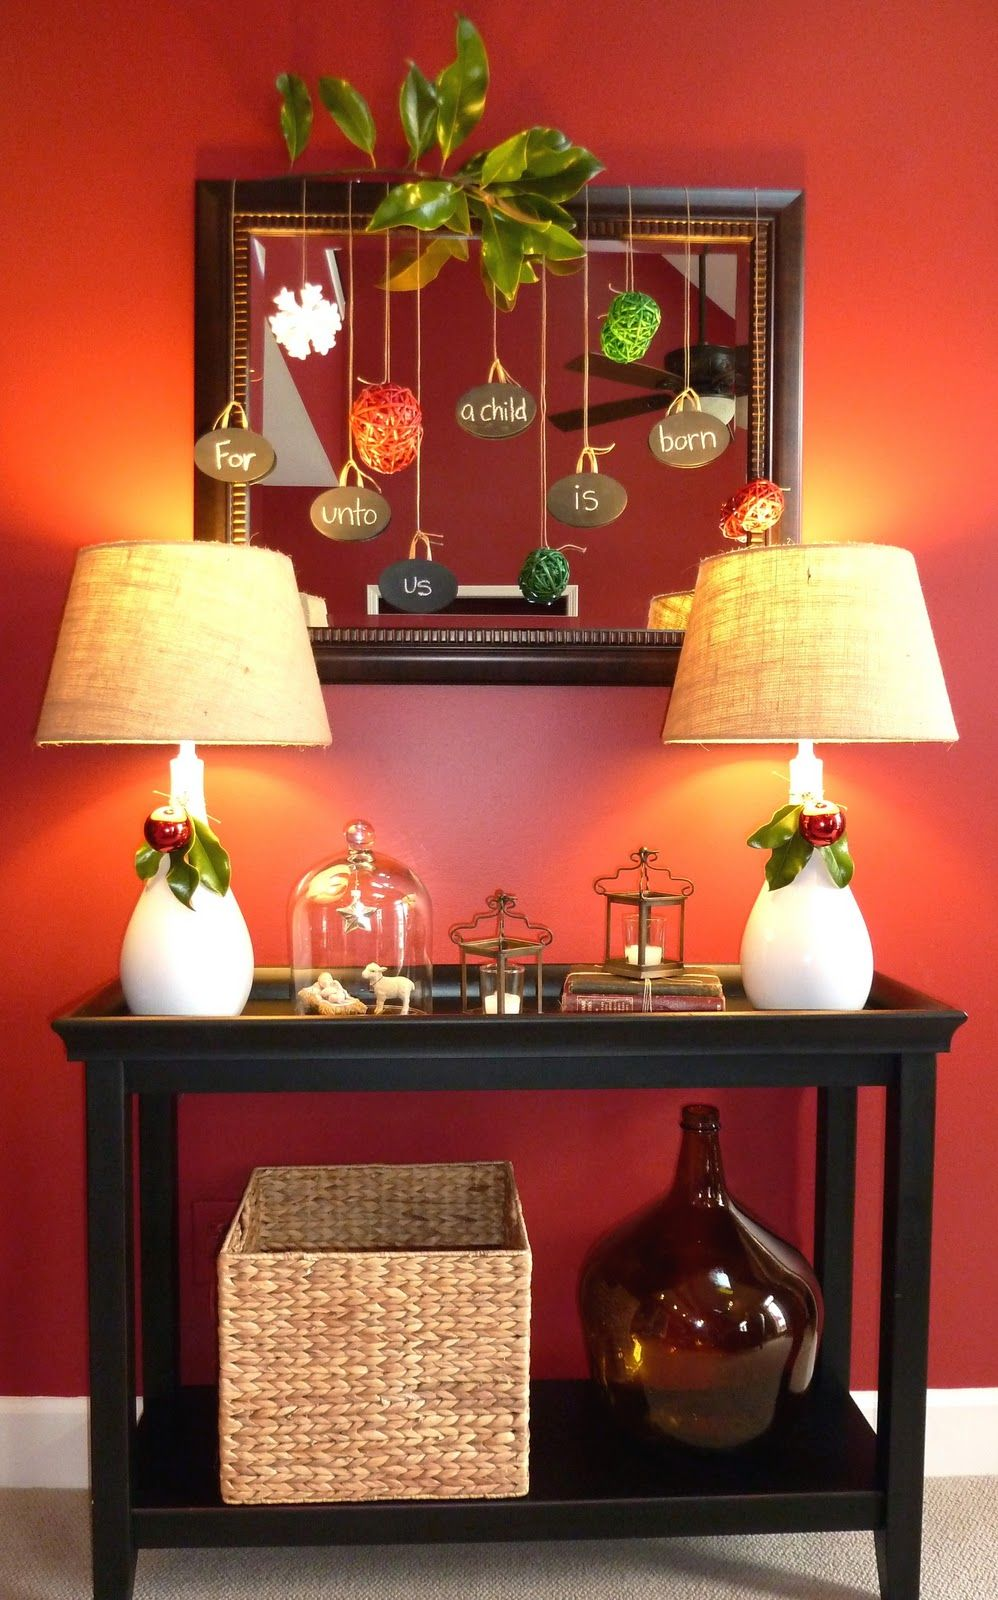 Fun And Traditional Christmas Hallway Decor Using A Pier 1 Console Table Seagr Basket